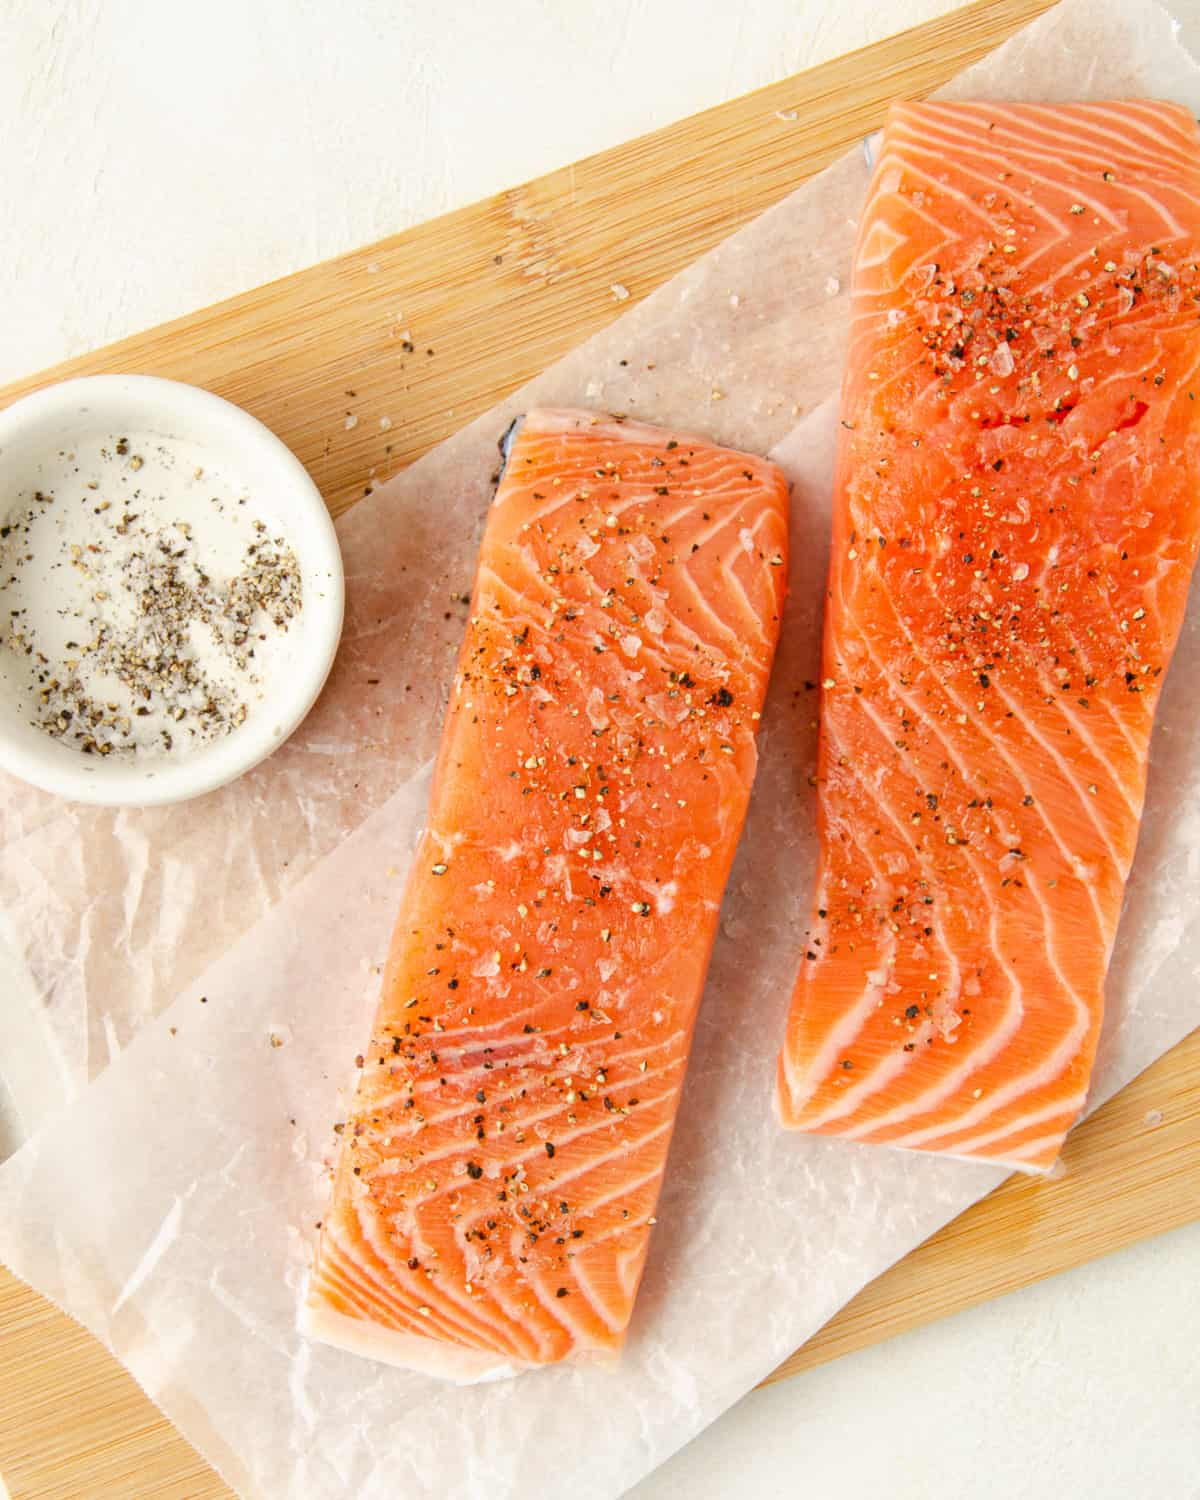 Two filets of salmon that are seasoned heavily with salt and pepper.